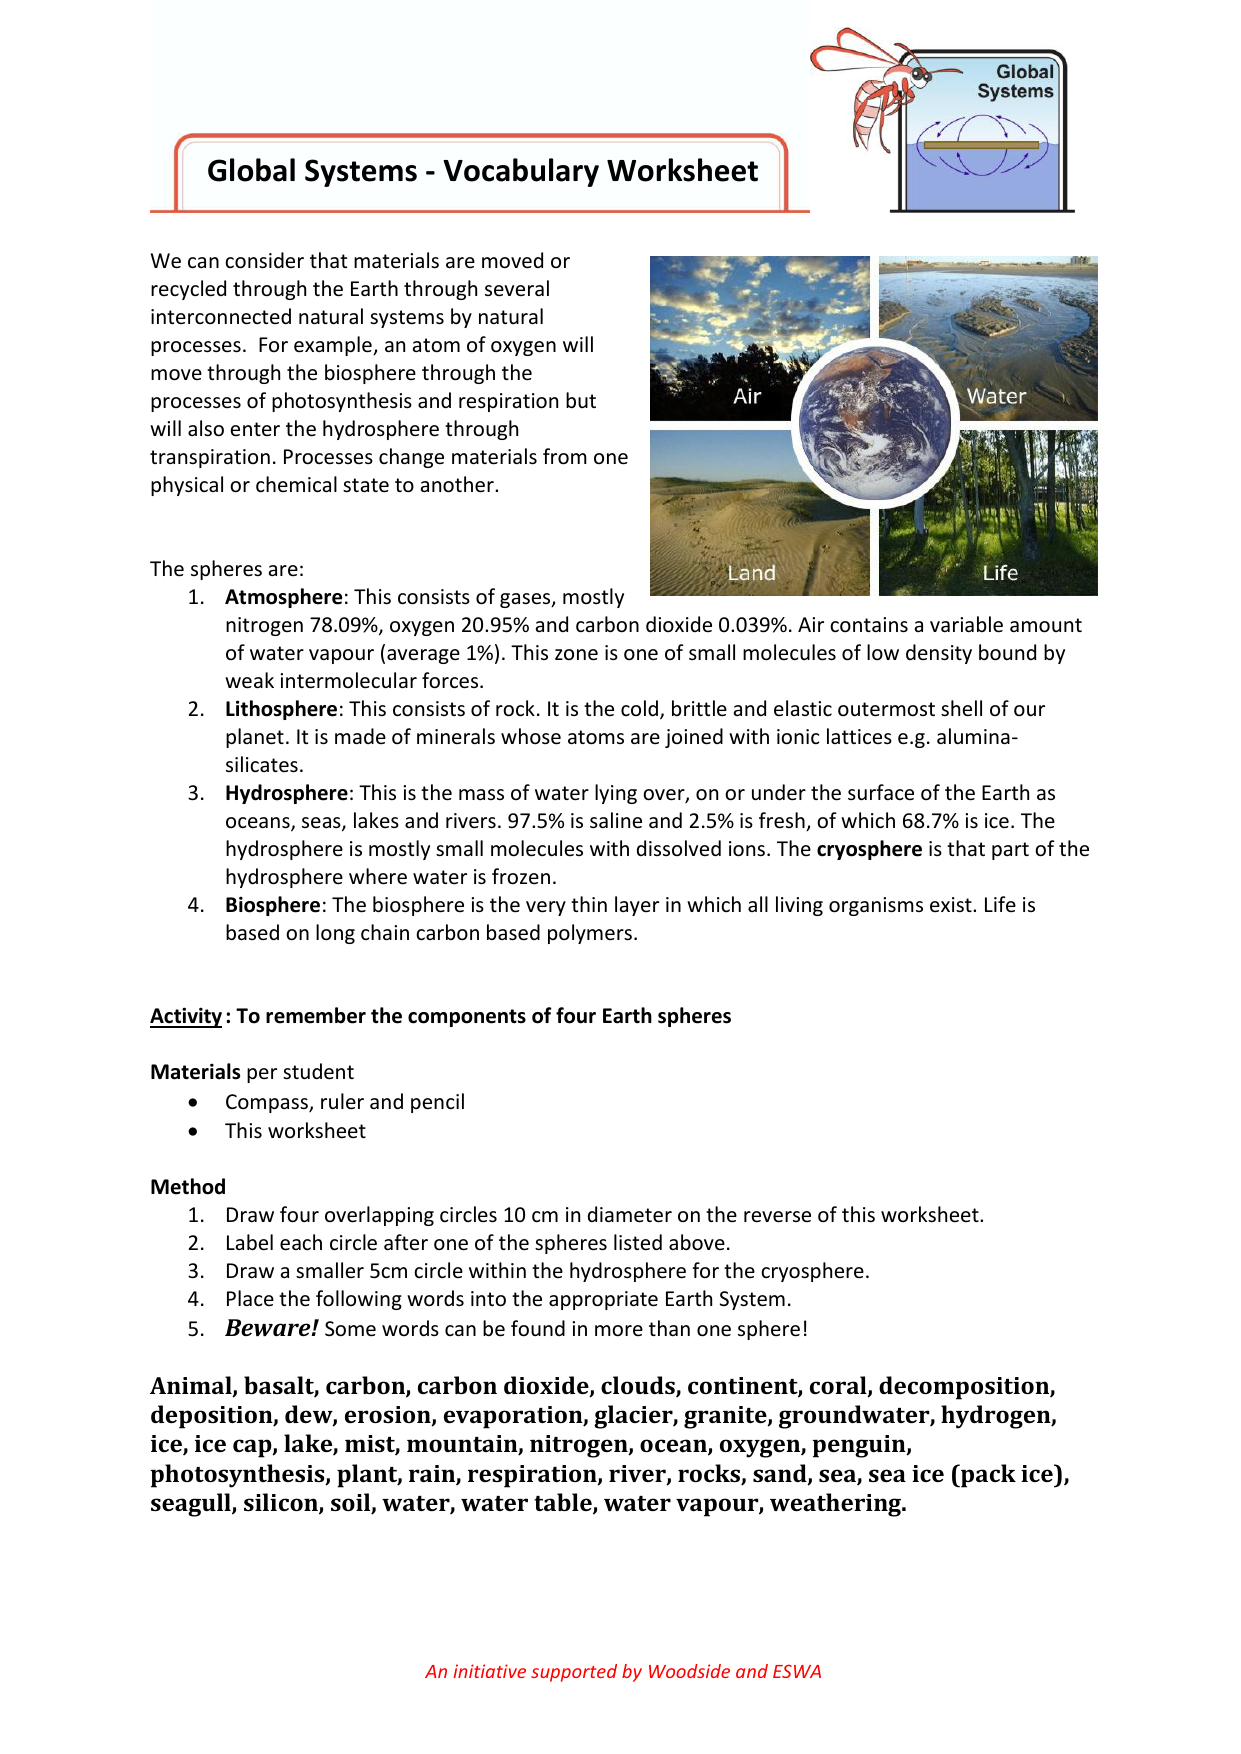 Global Systems Vocabulary Worksheet File